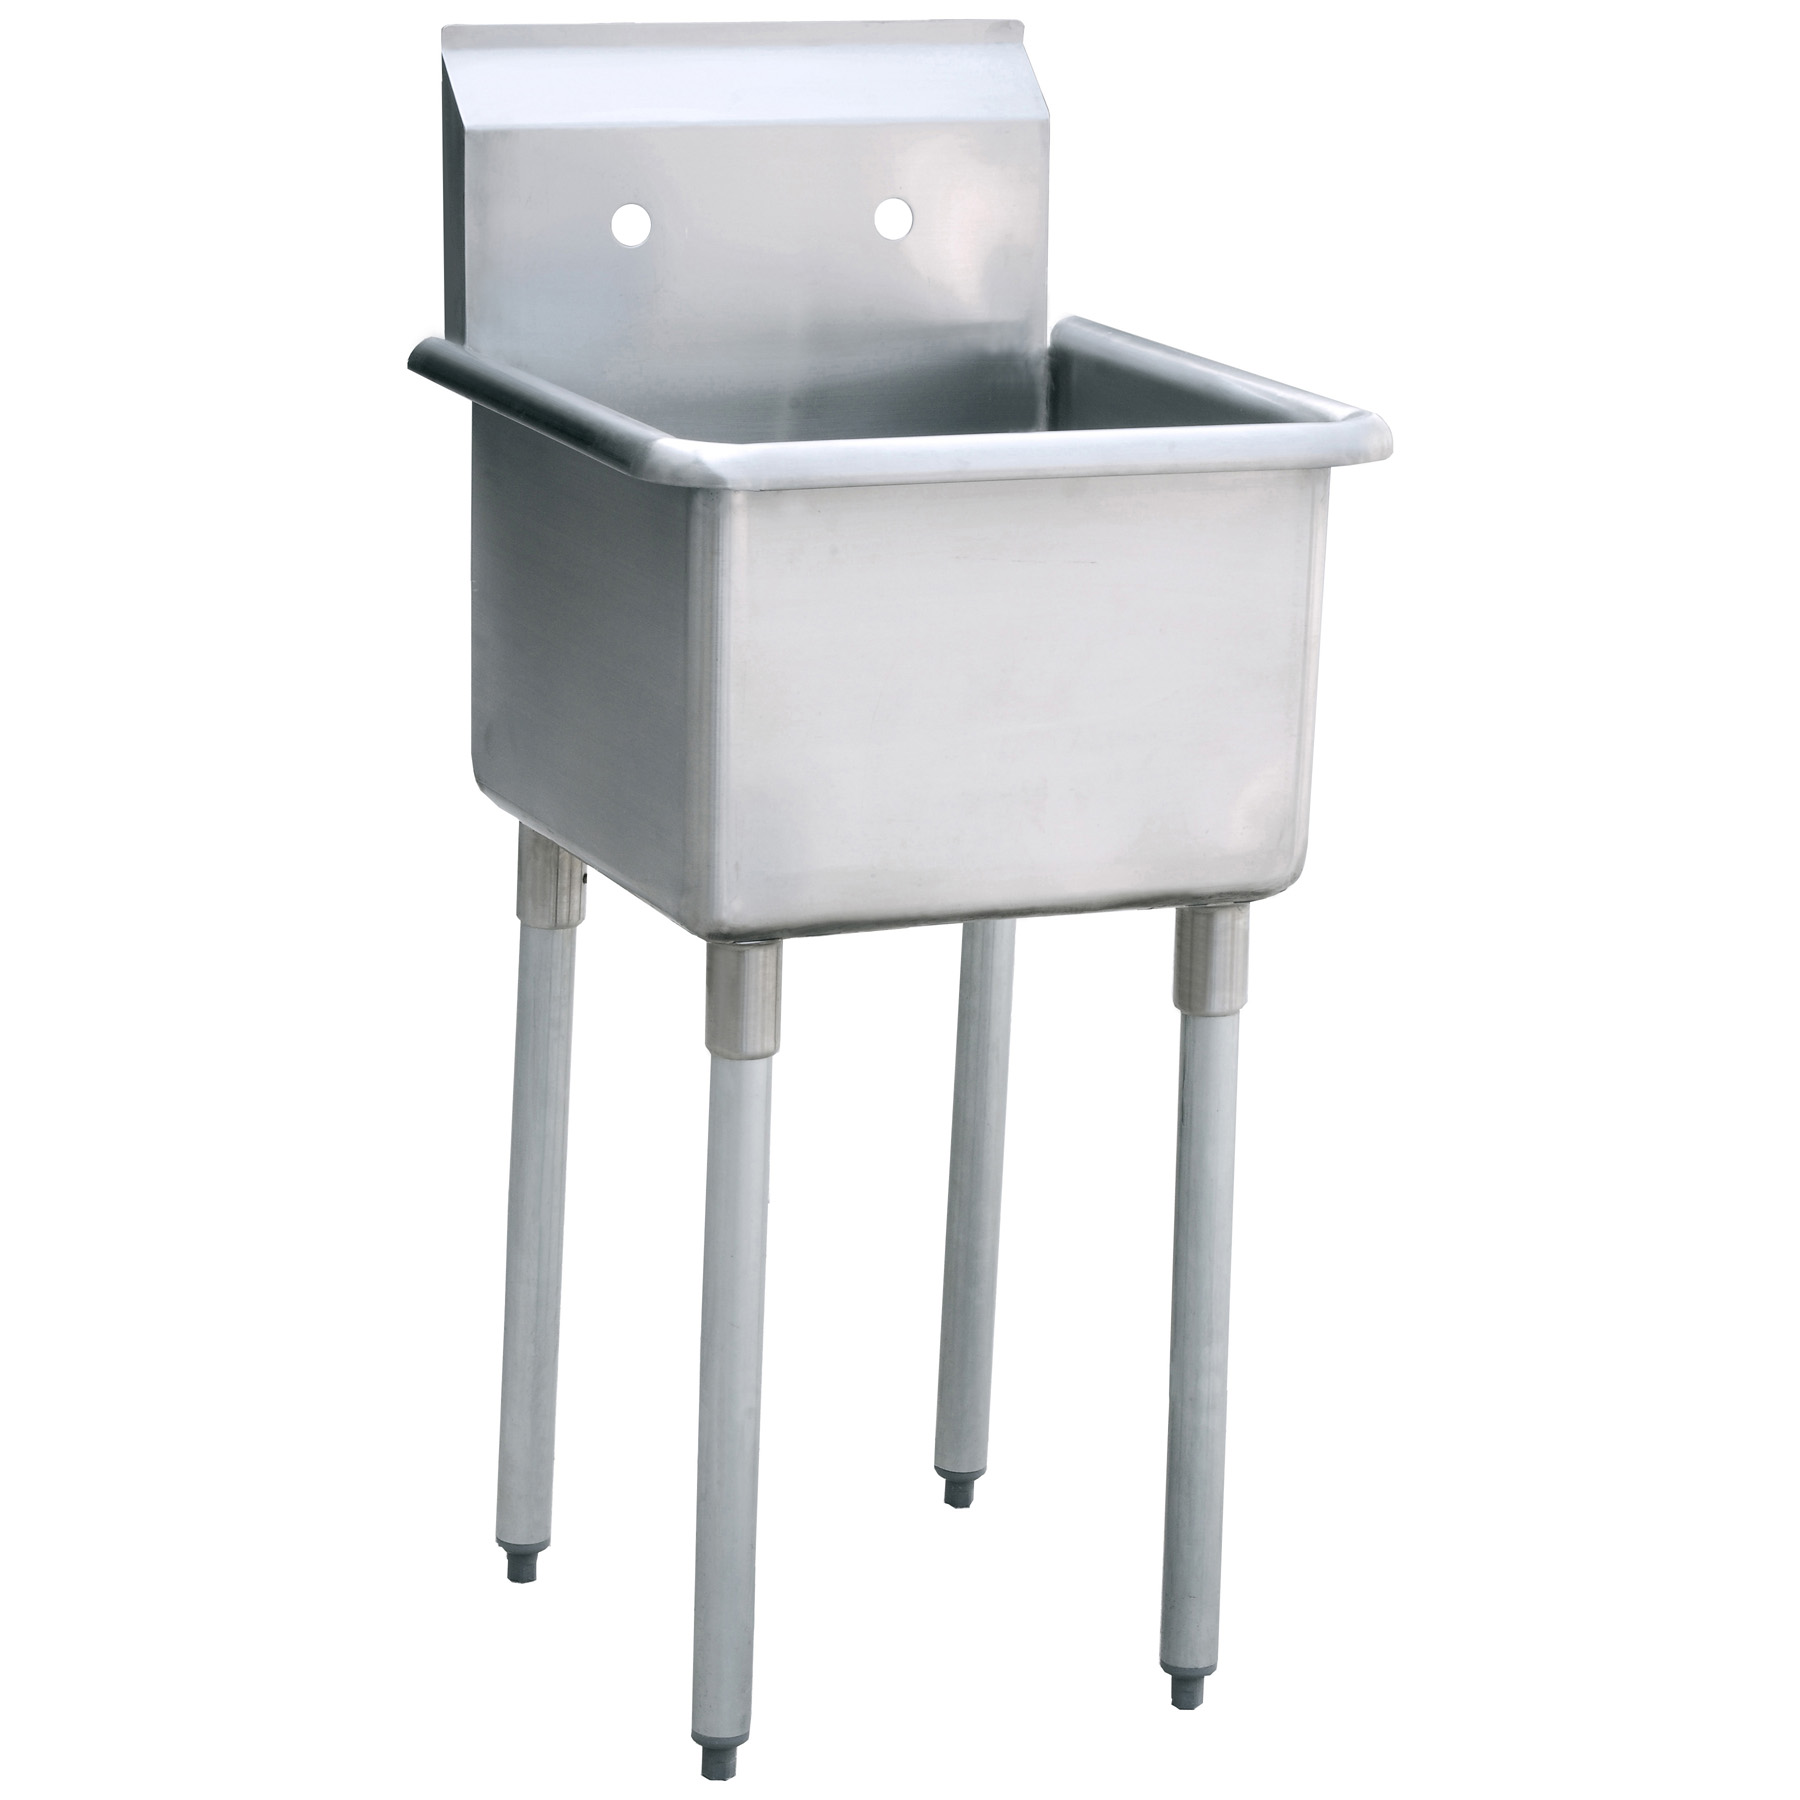 Atosa USA MRS-1-MOP mop sink